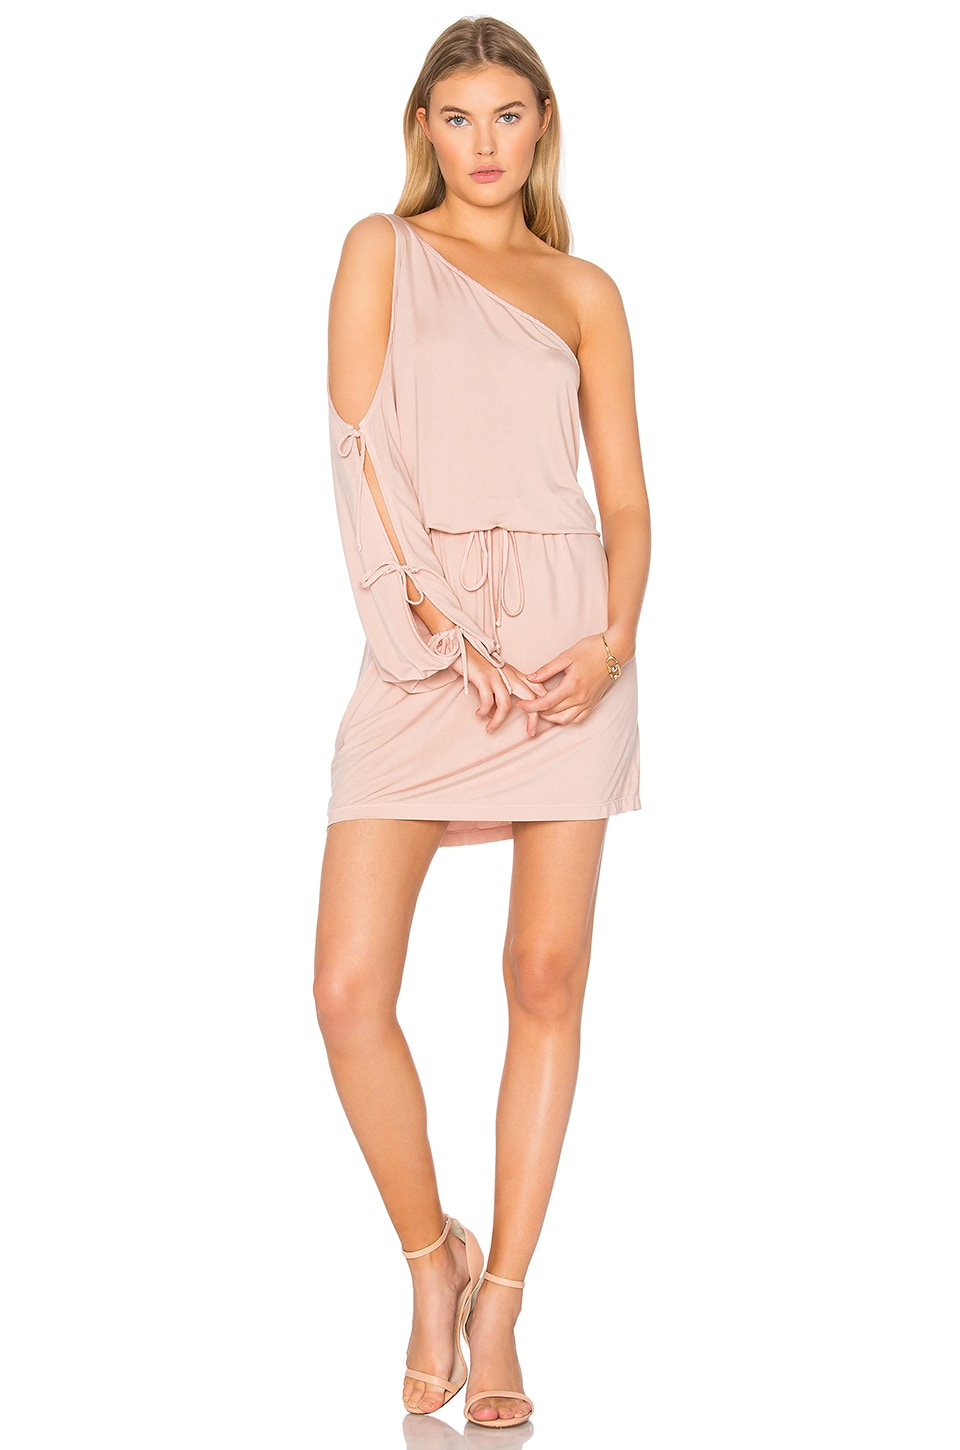 YFB CLOTHING Lula Dress in Pink Sand